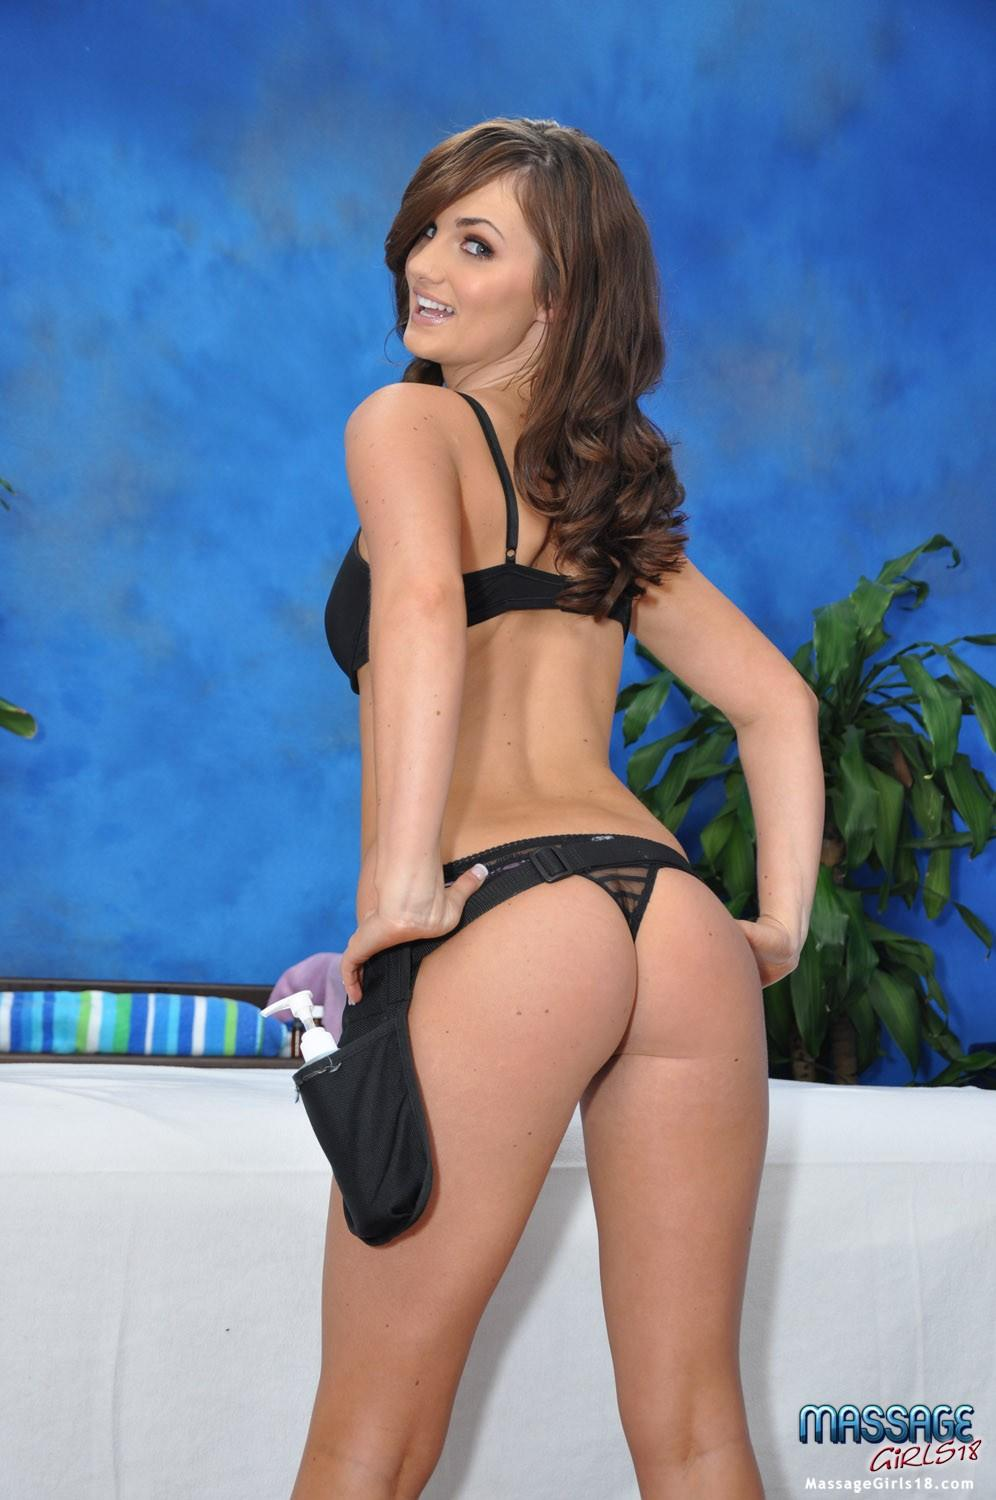 Hot 18 year old brunette gves MORE than just a massage ...